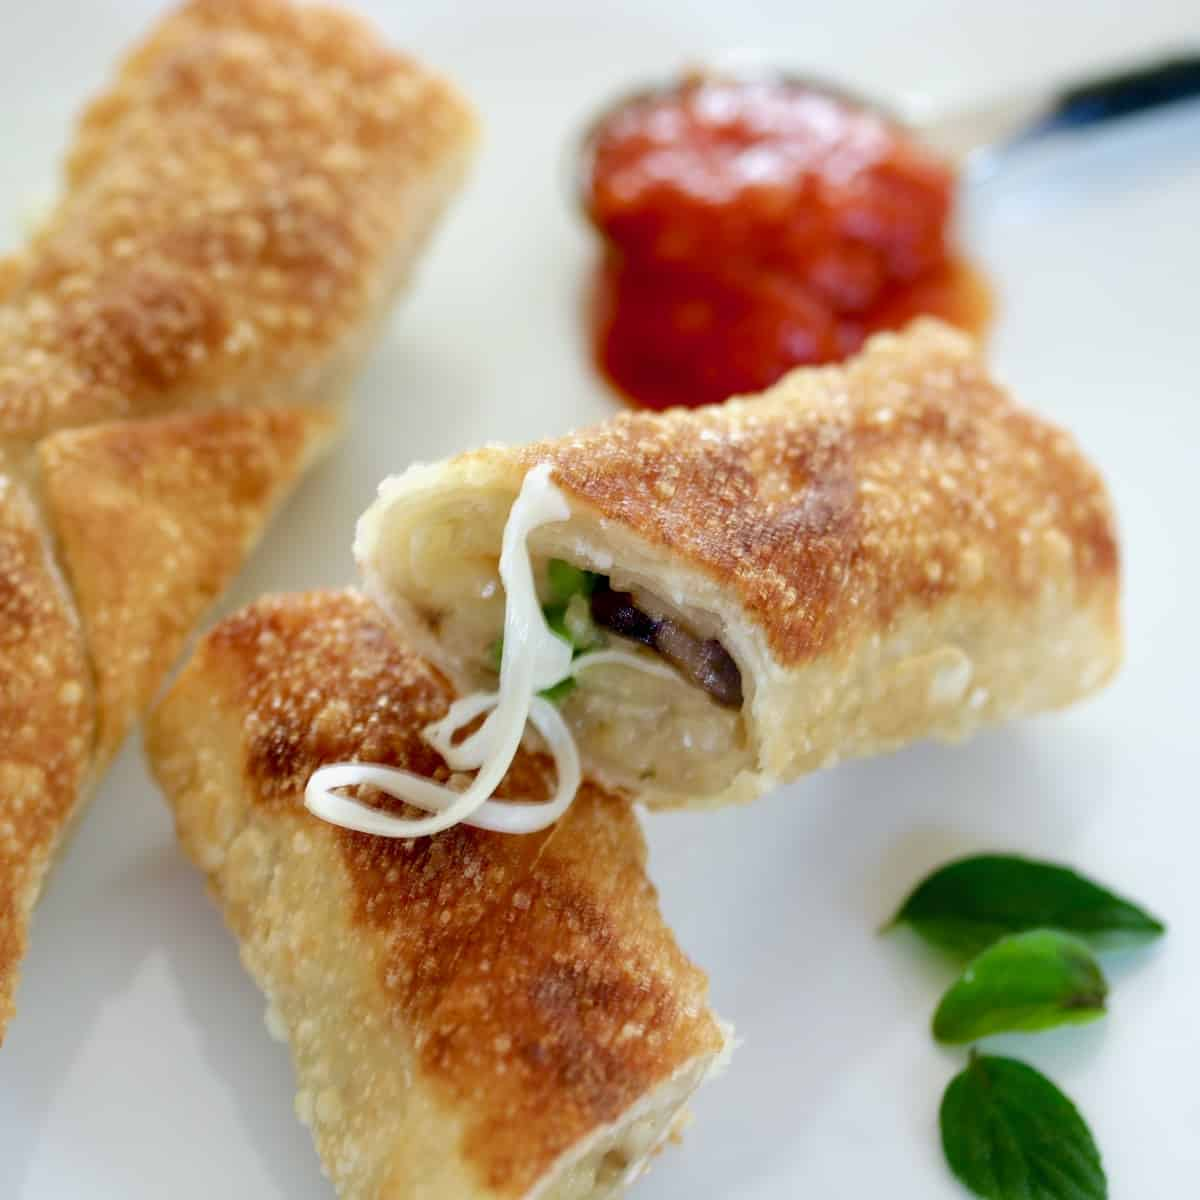 sliced egg rolls with sauce and herbs